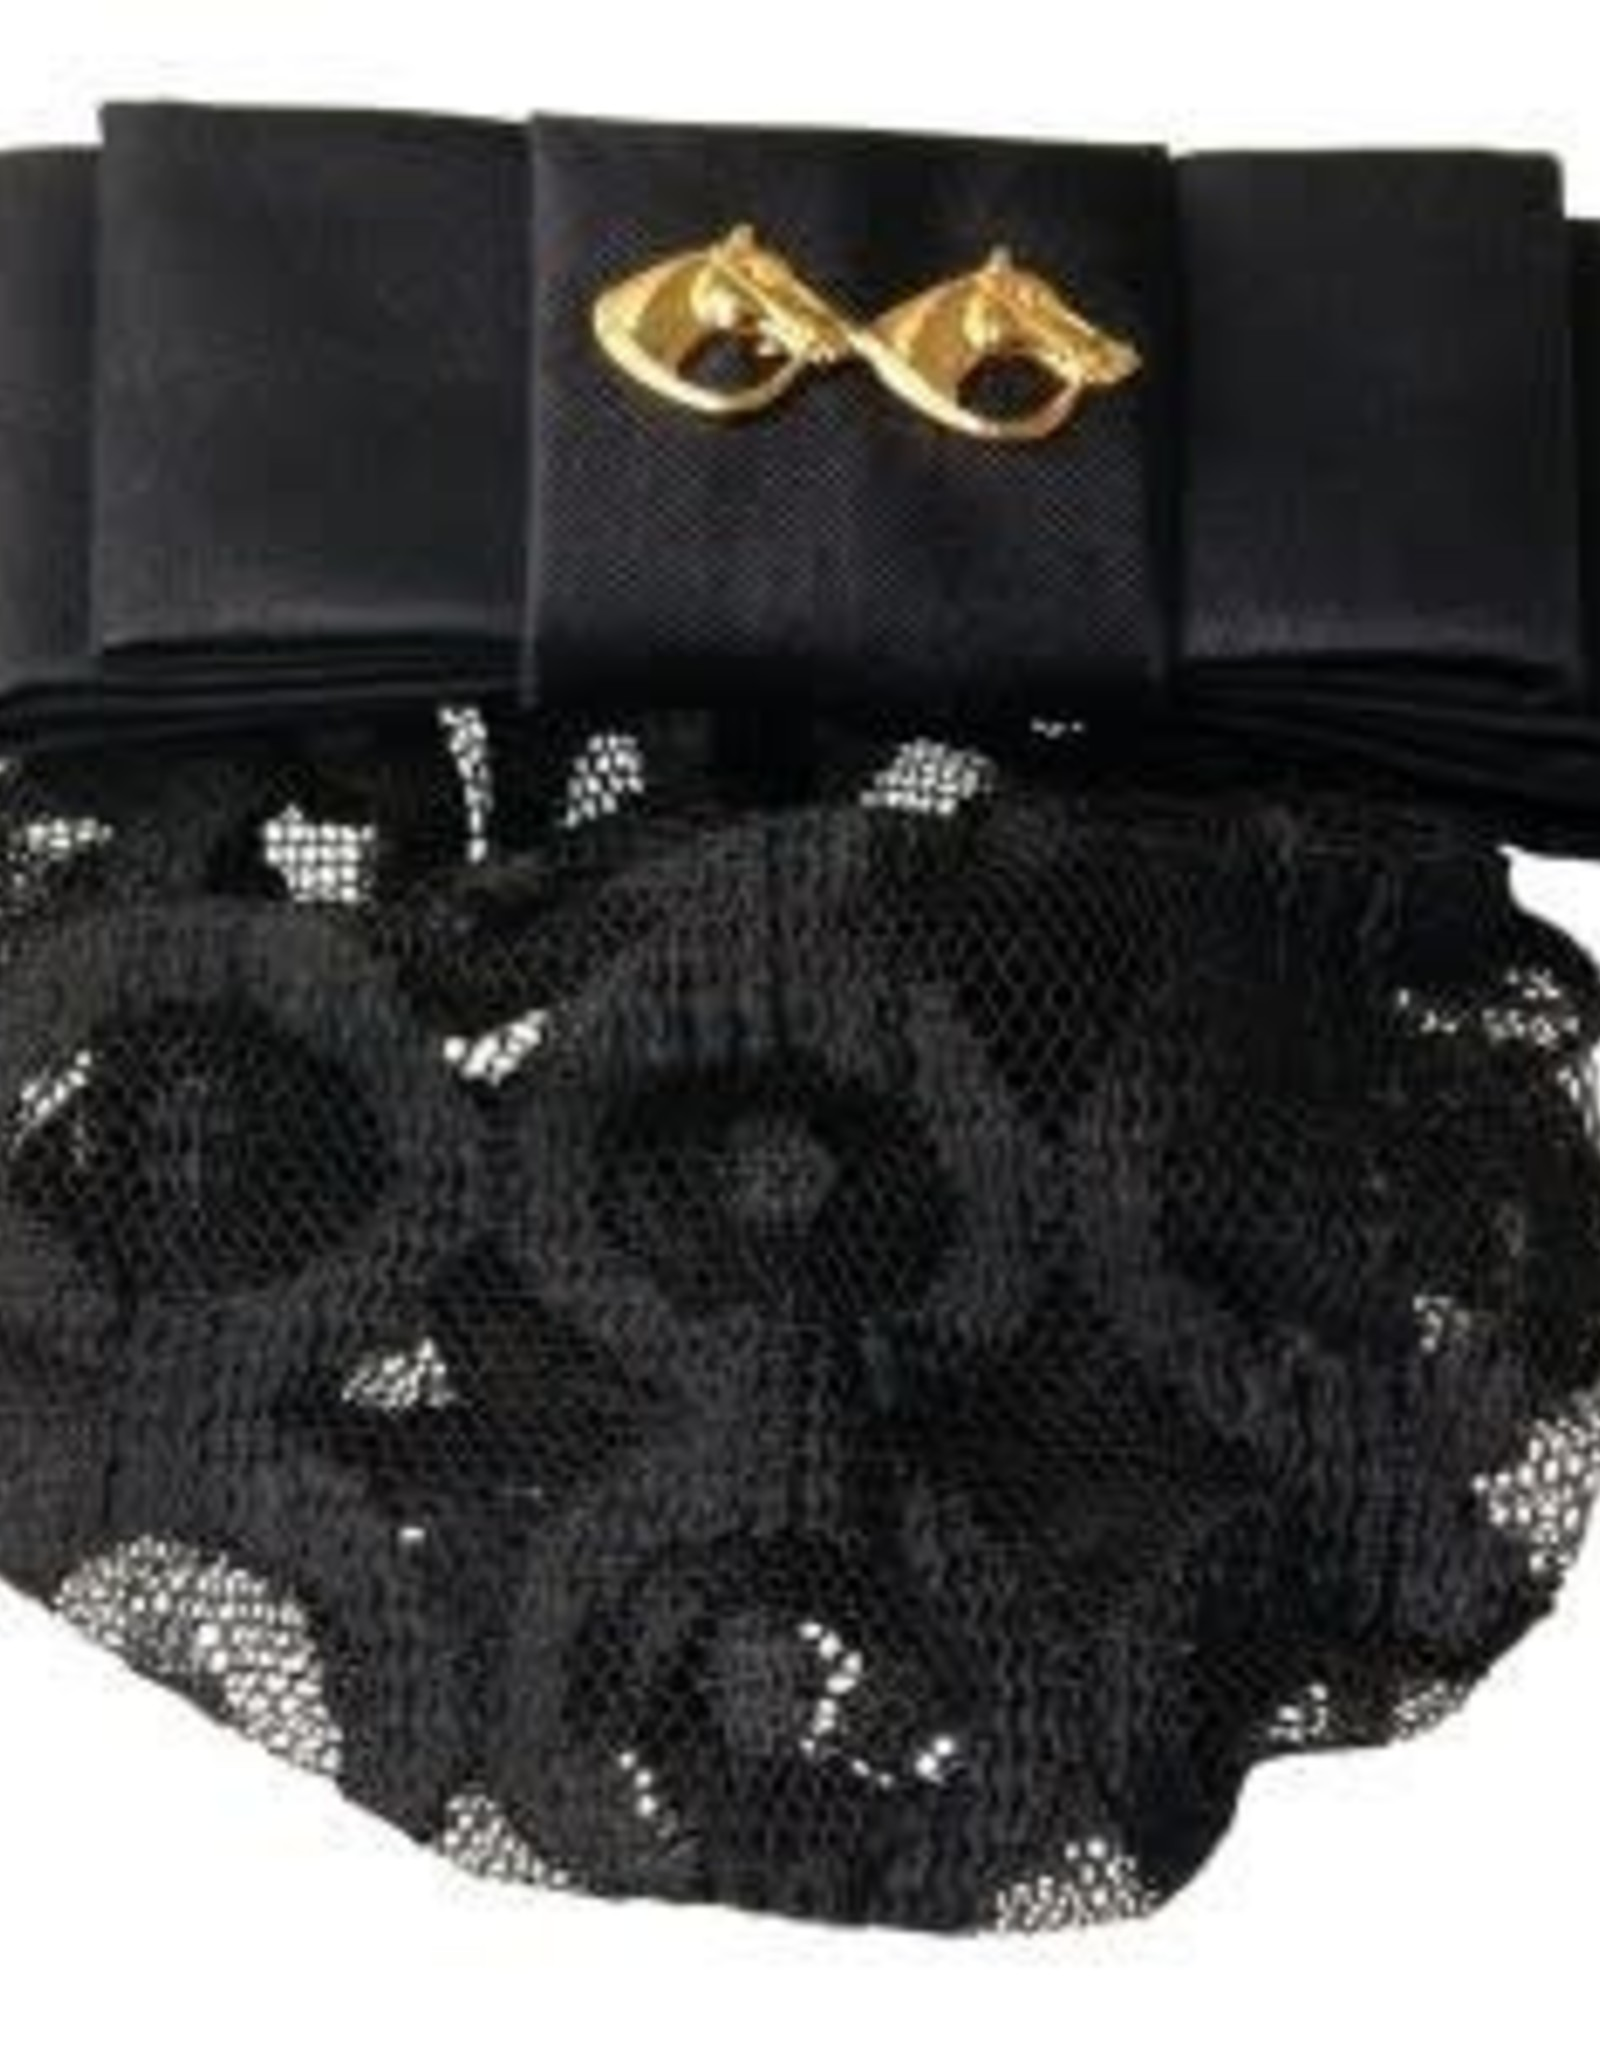 Hawthorne Show Bow Barrette - Black Satin with Gold Horseheads